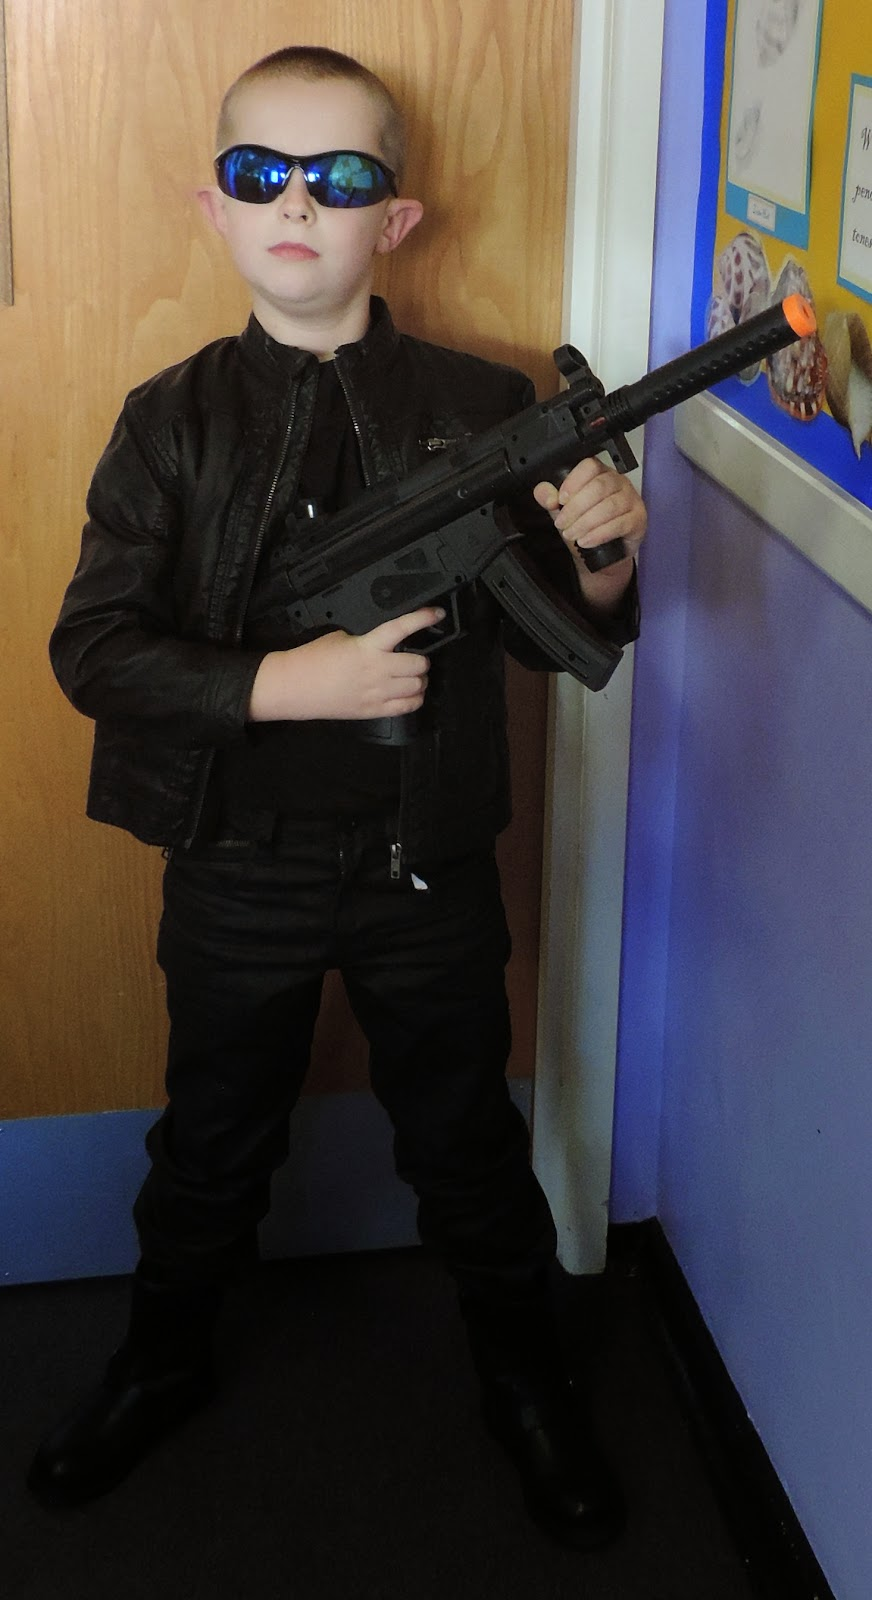 boy dressed as schwarzenegger Terminator cosplay